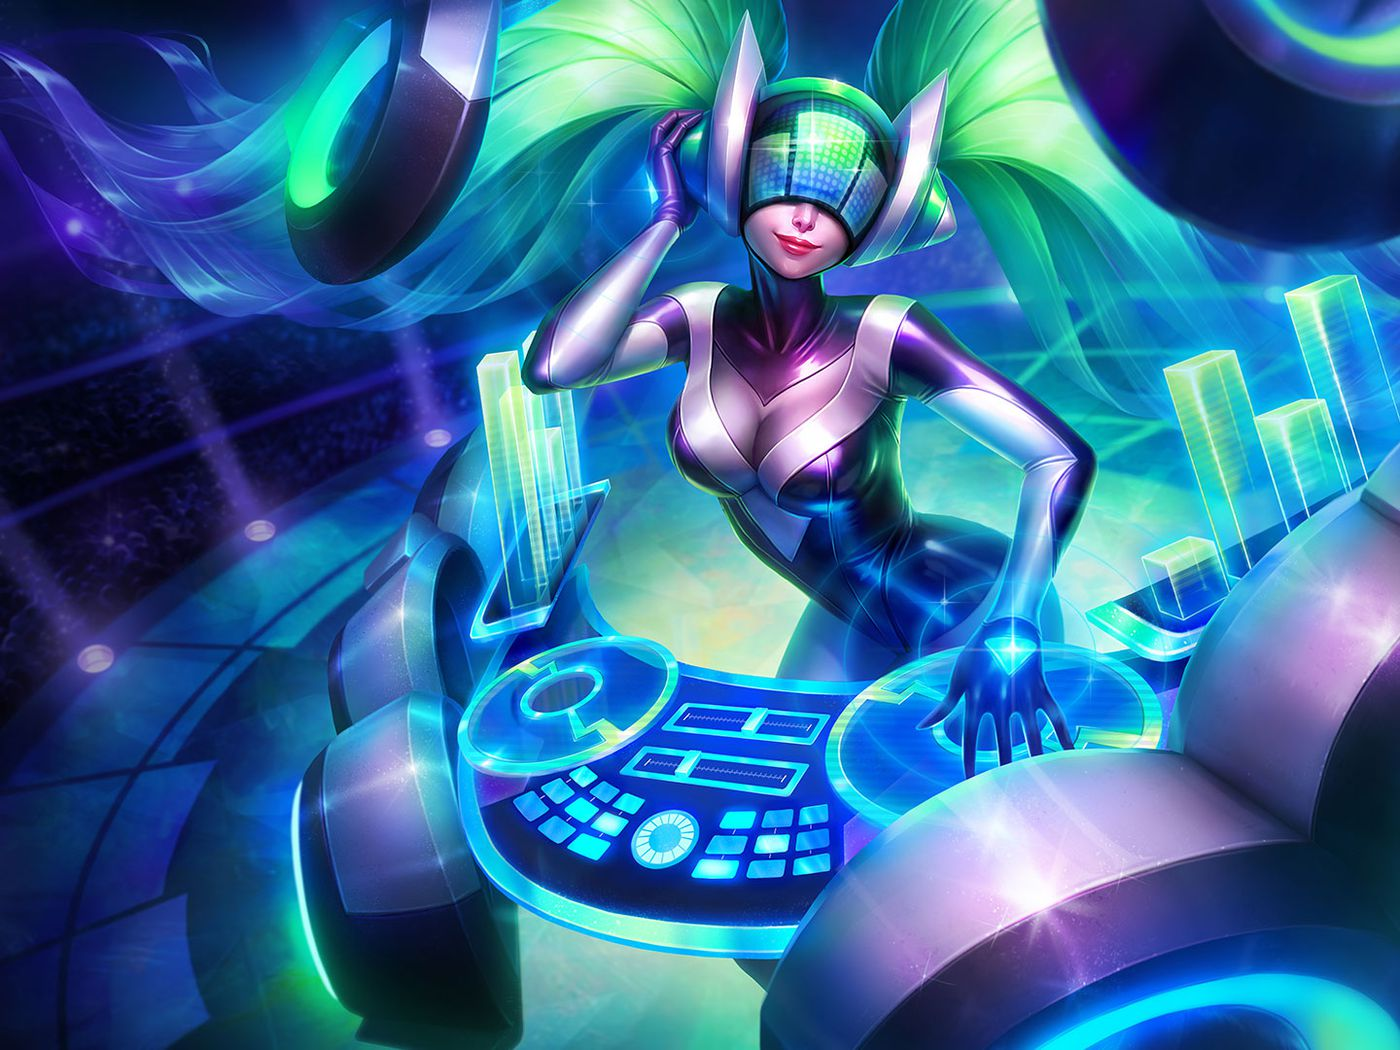 How To Get The Most Out Of Gambling On League Of Legends Mystery Skins Polygon